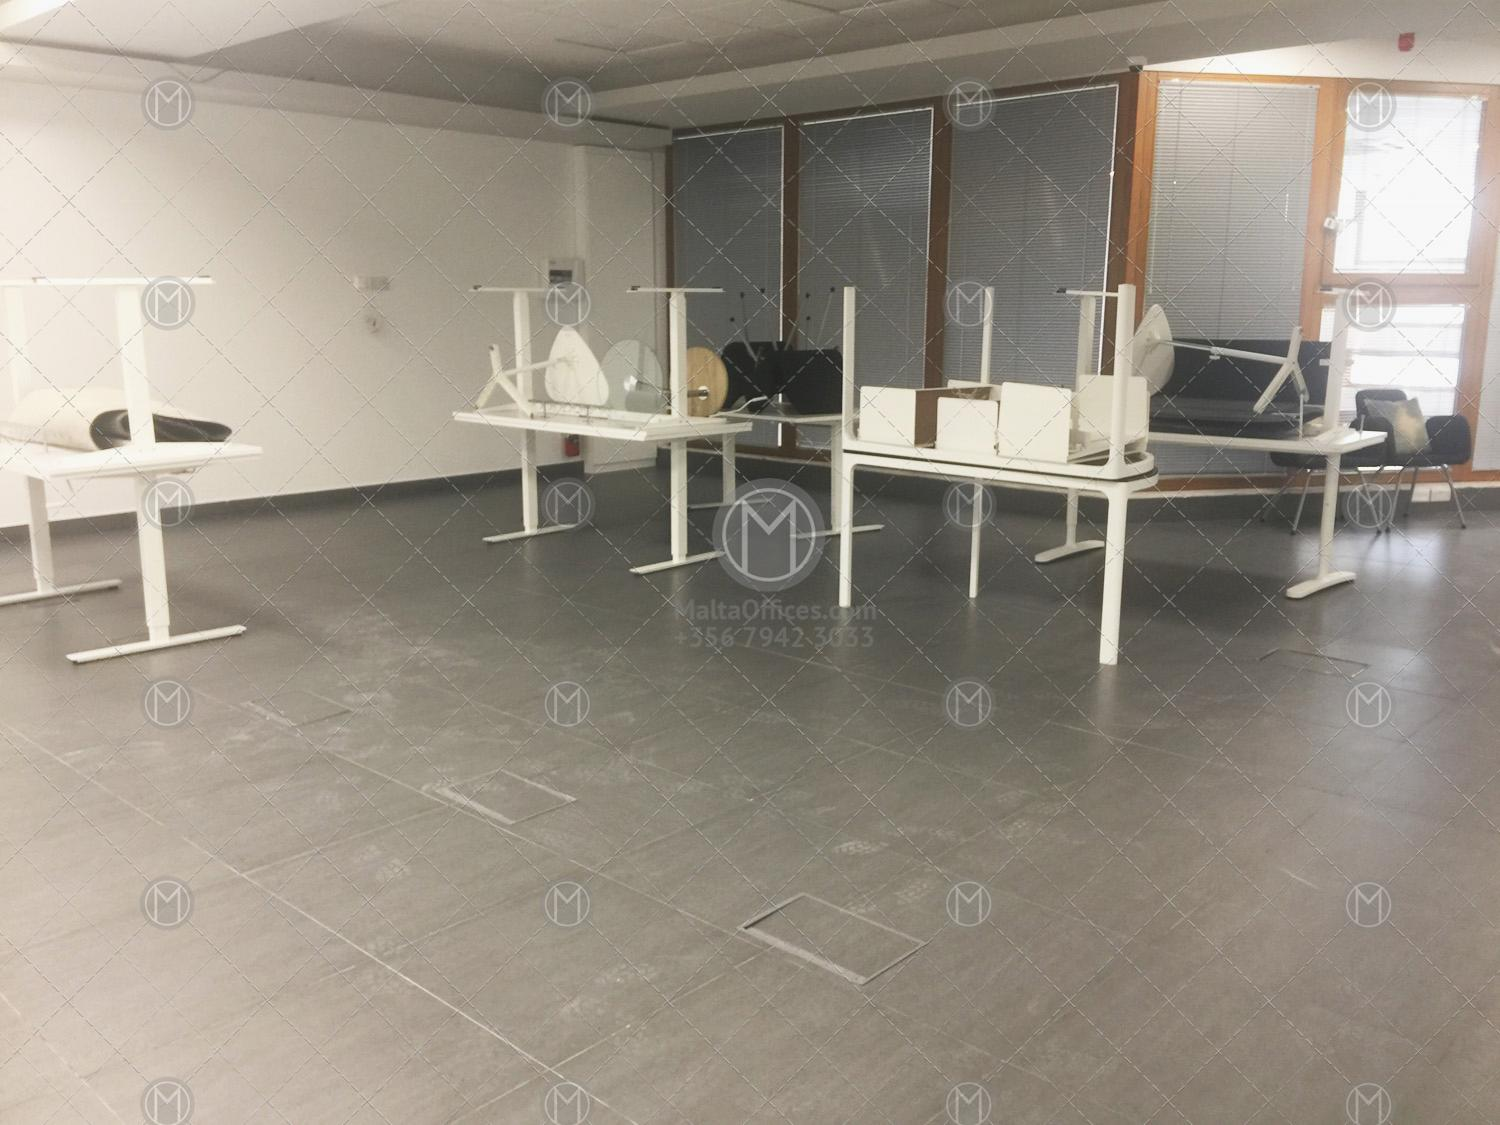 Sliema Central Office for Rent (180sqm)